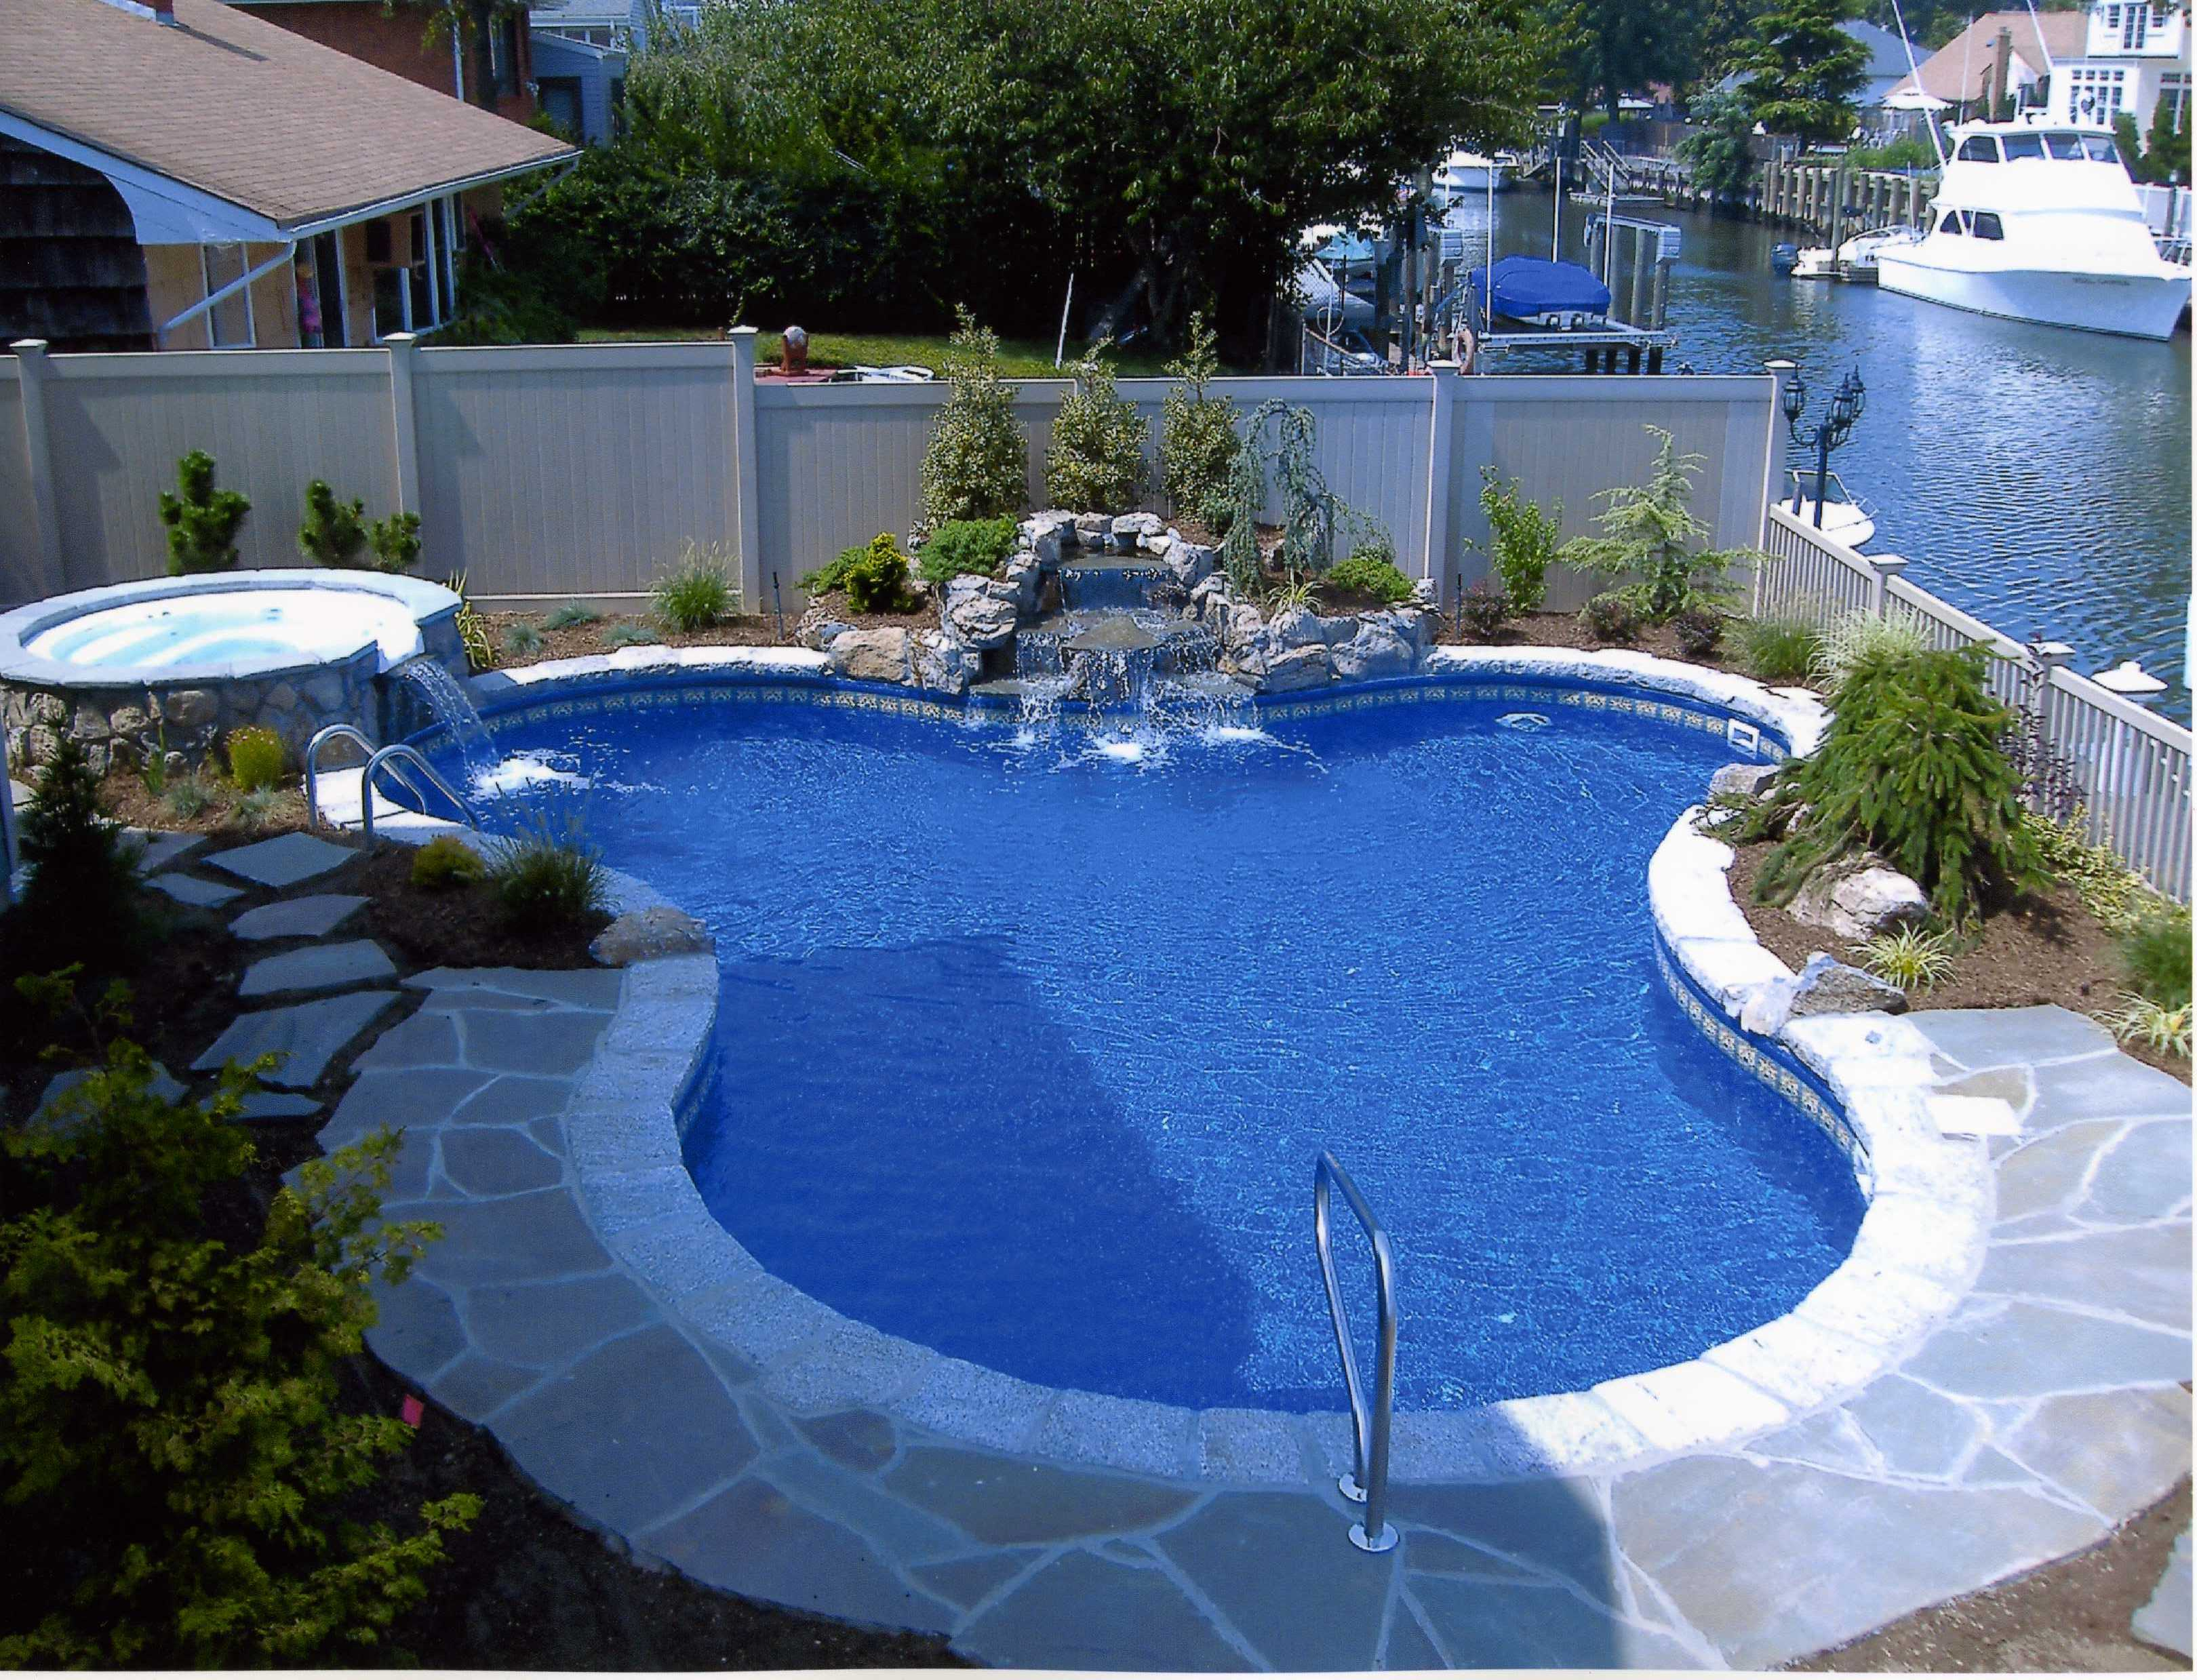 Backyard landscaping ideas swimming pool design - Swimming swimming in my swimming pool lyrics ...